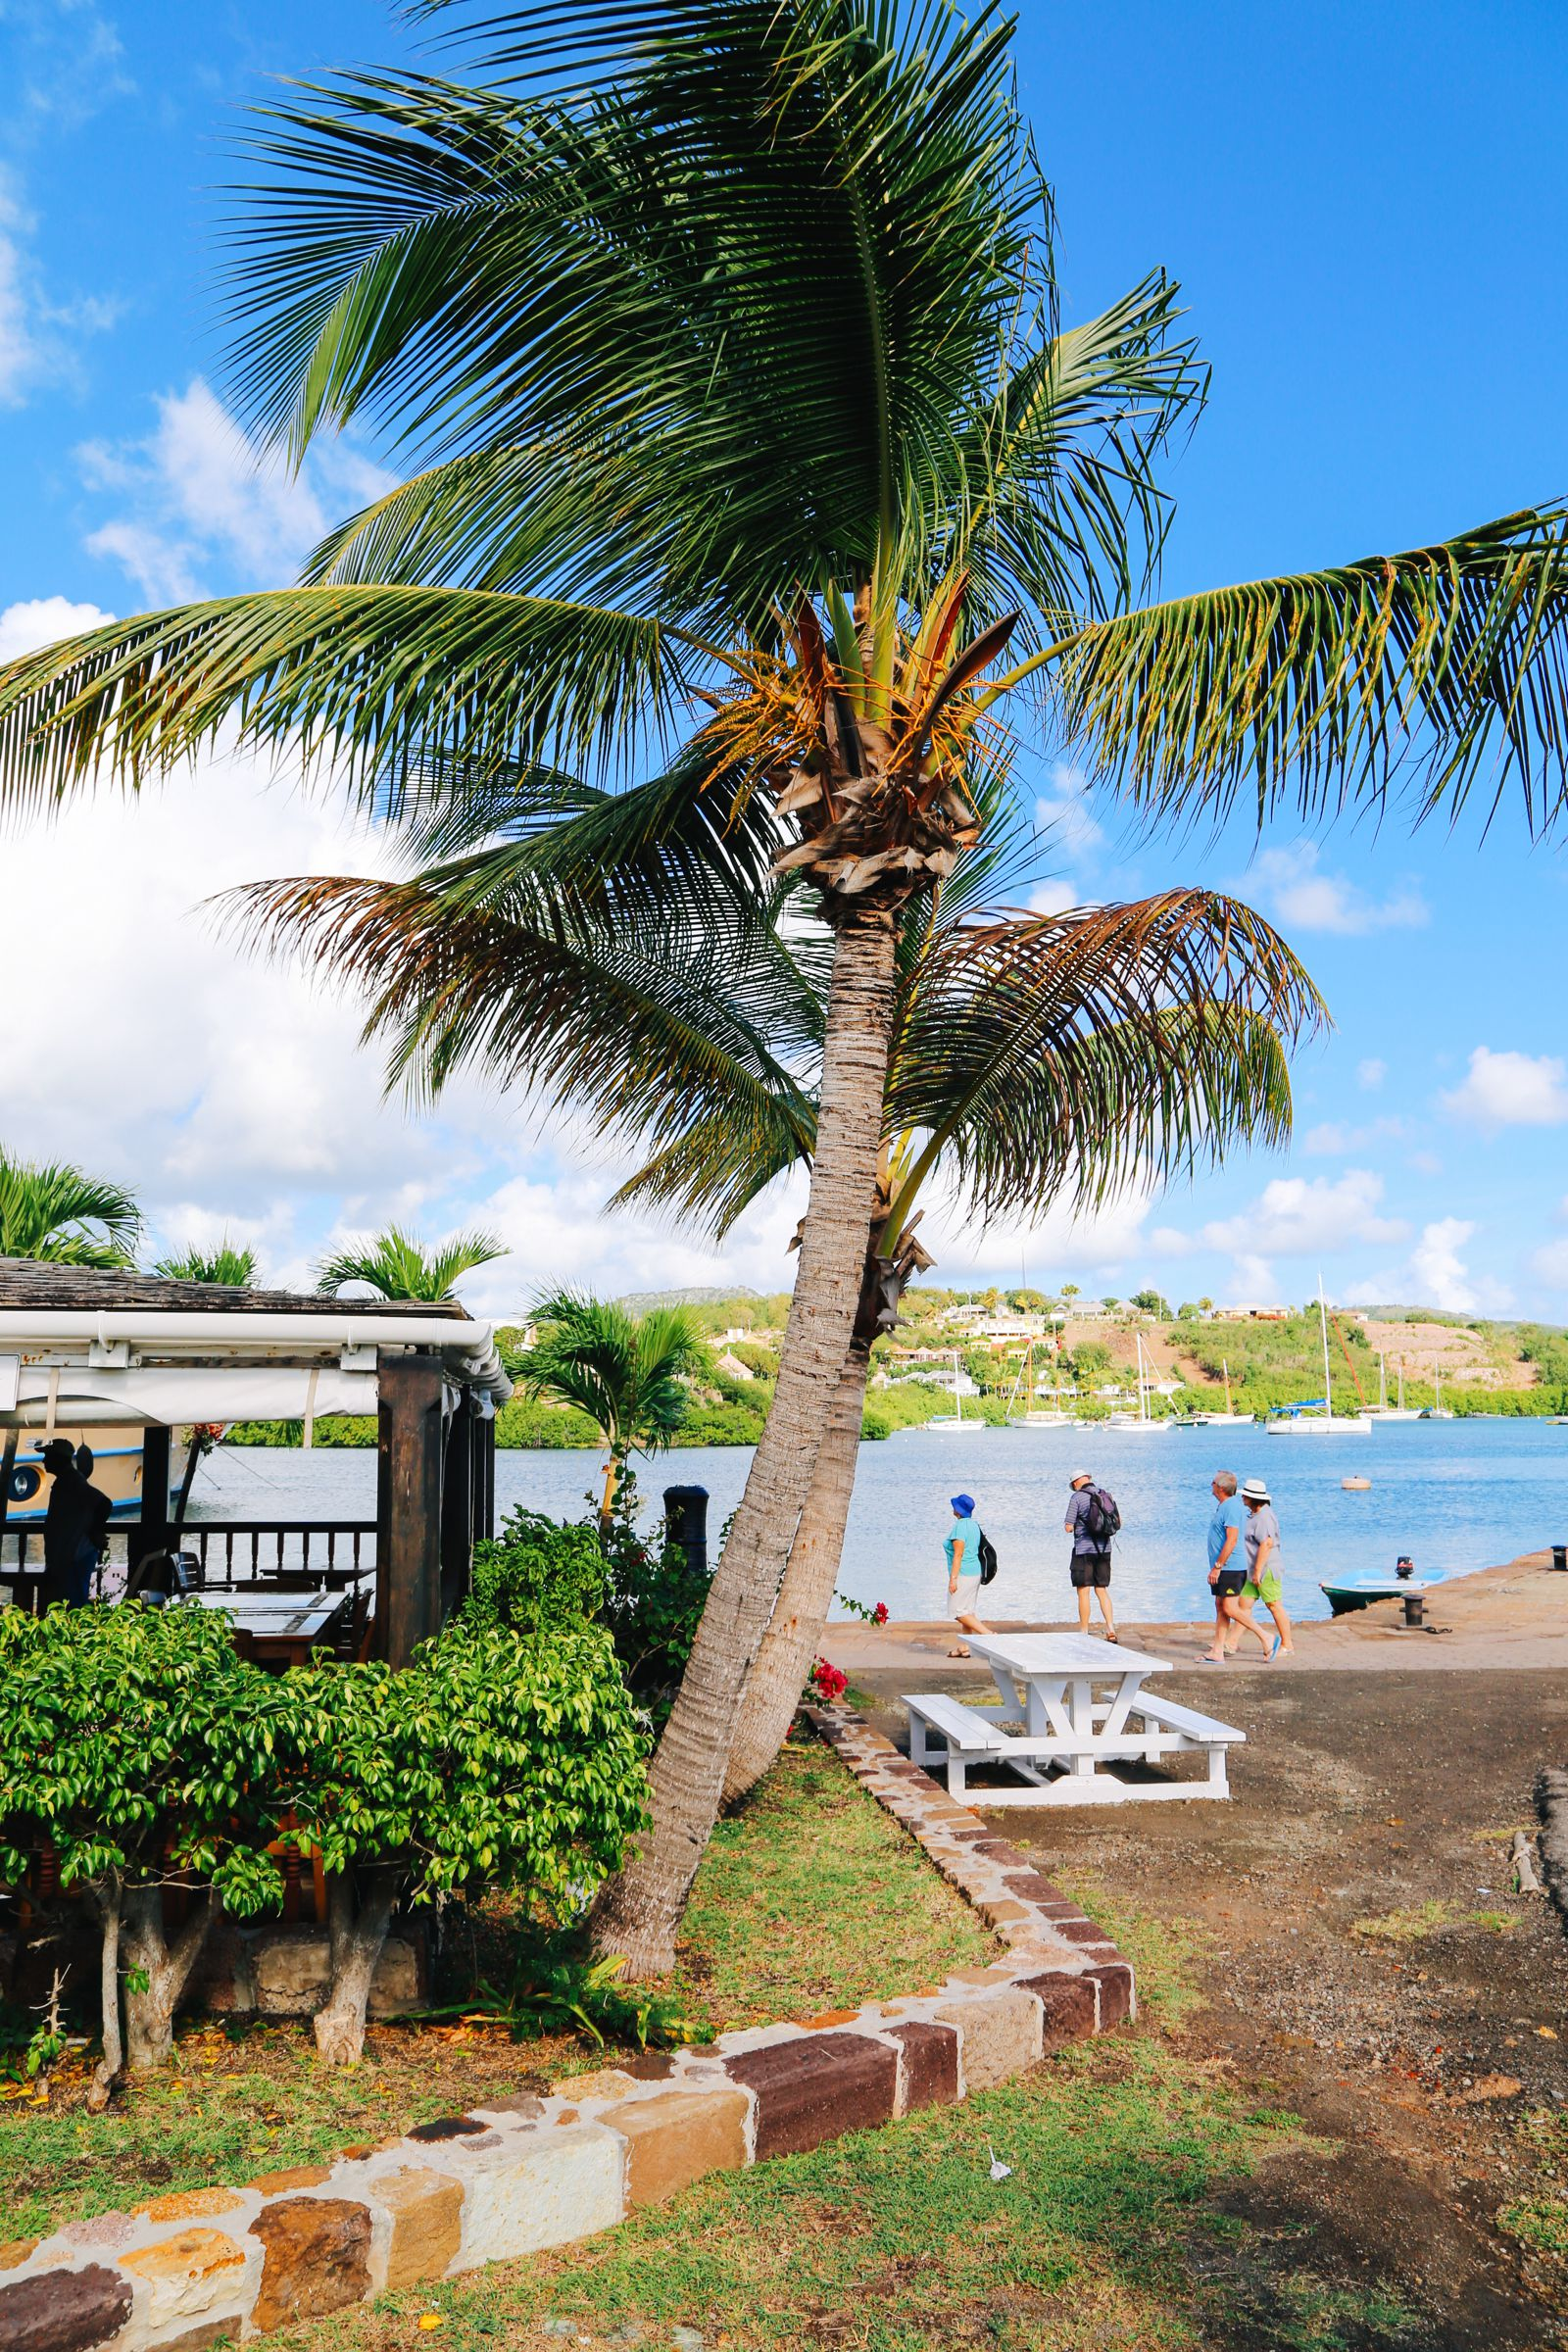 Exploring The Caribbean Island Of Antigua By Land - Part 1 (5)